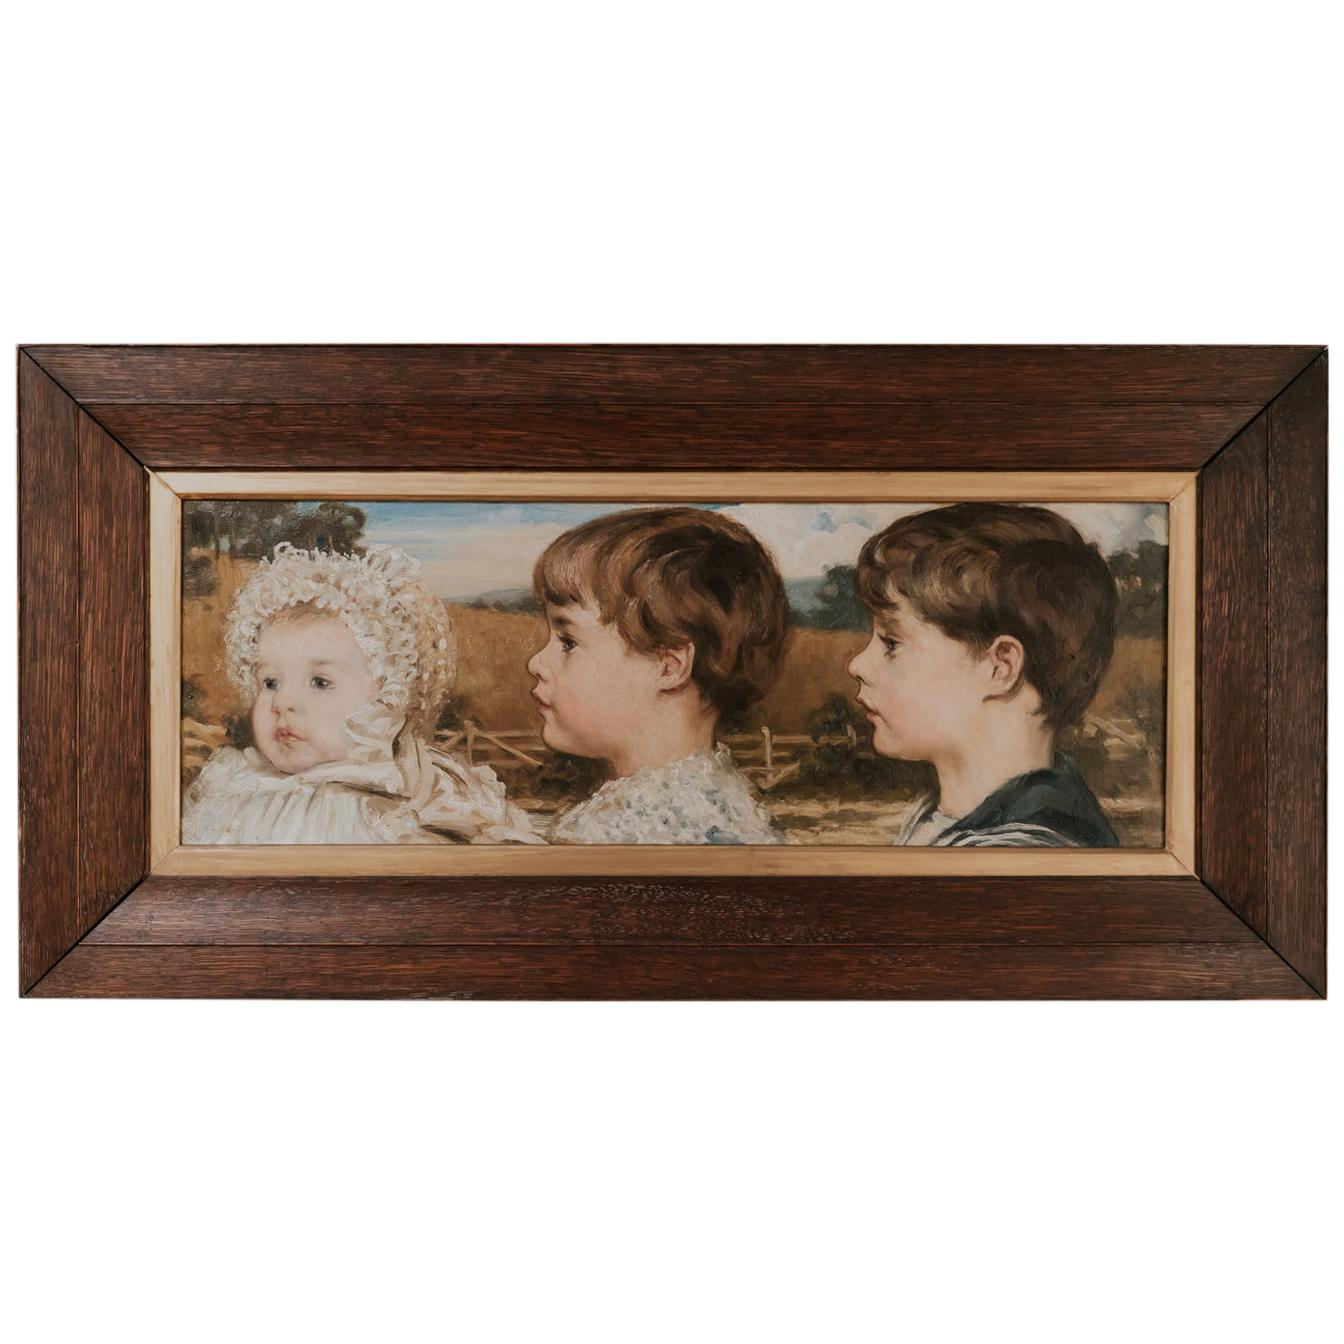 Oil on Canvas Painting of Three Toddlers